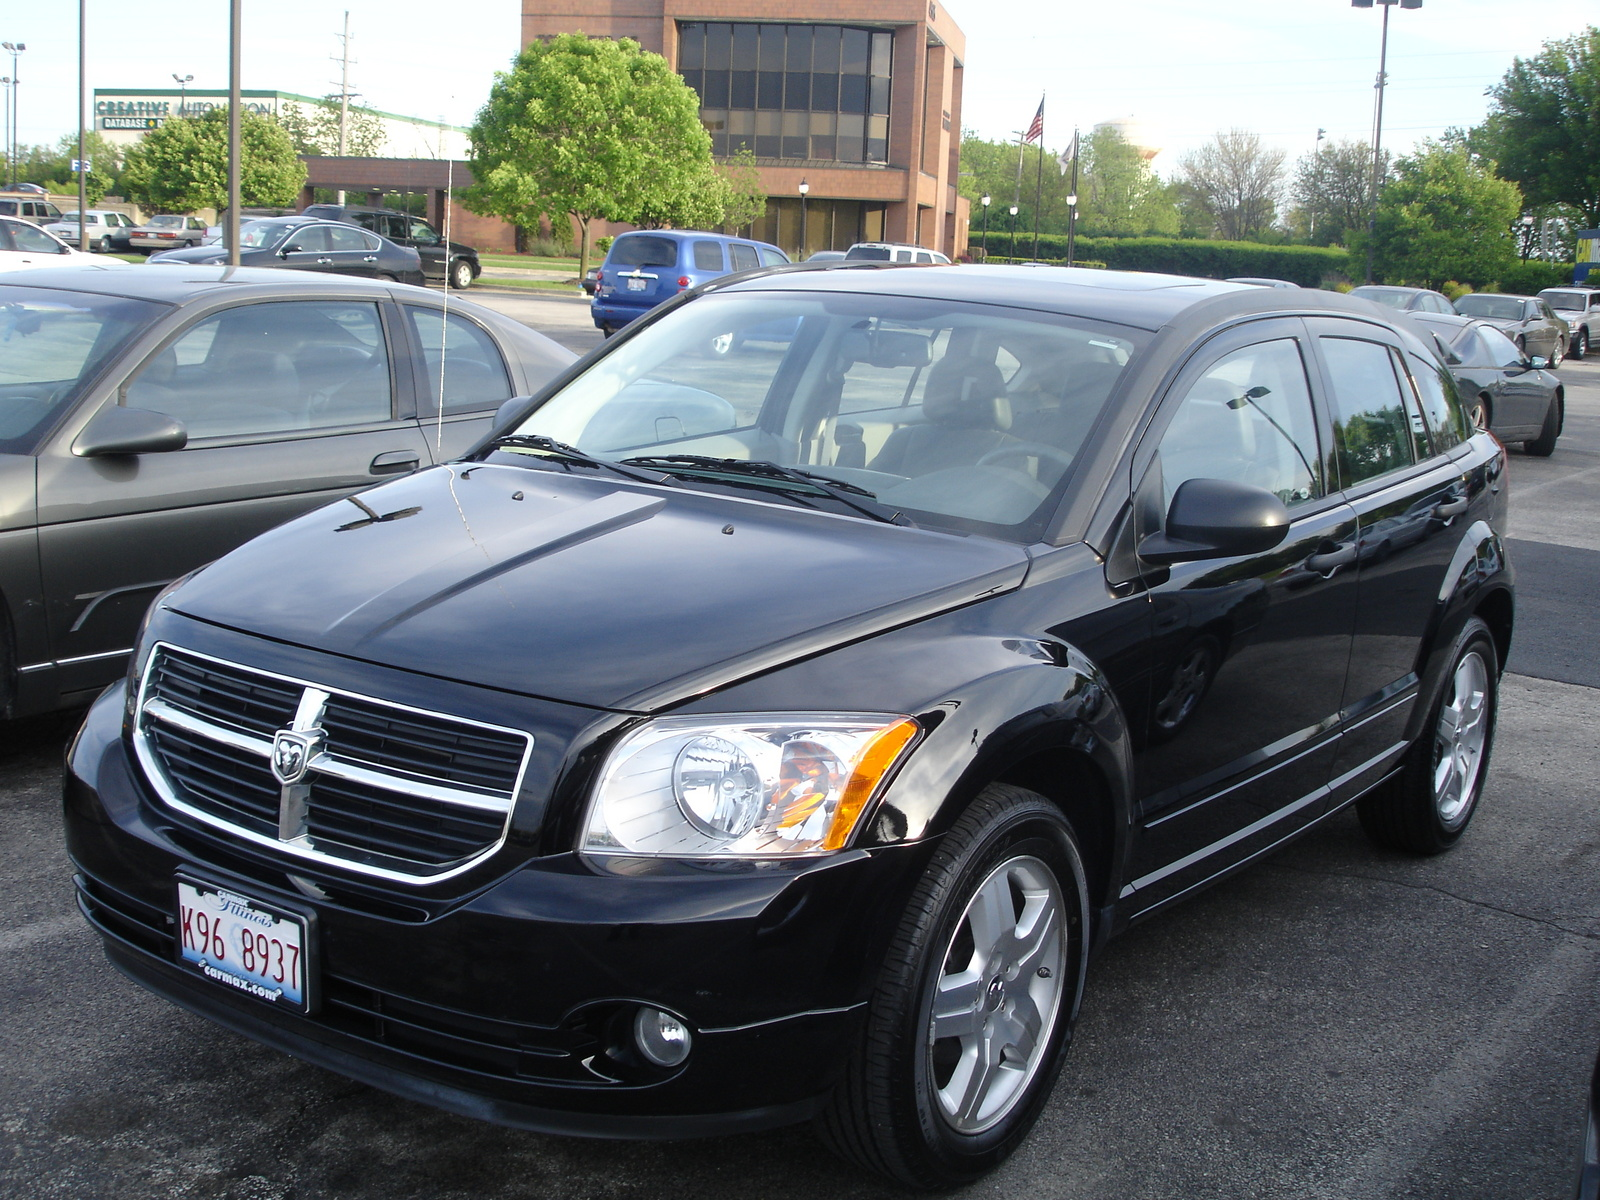 dodge caliber 2007problrateur sympatico. Black Bedroom Furniture Sets. Home Design Ideas